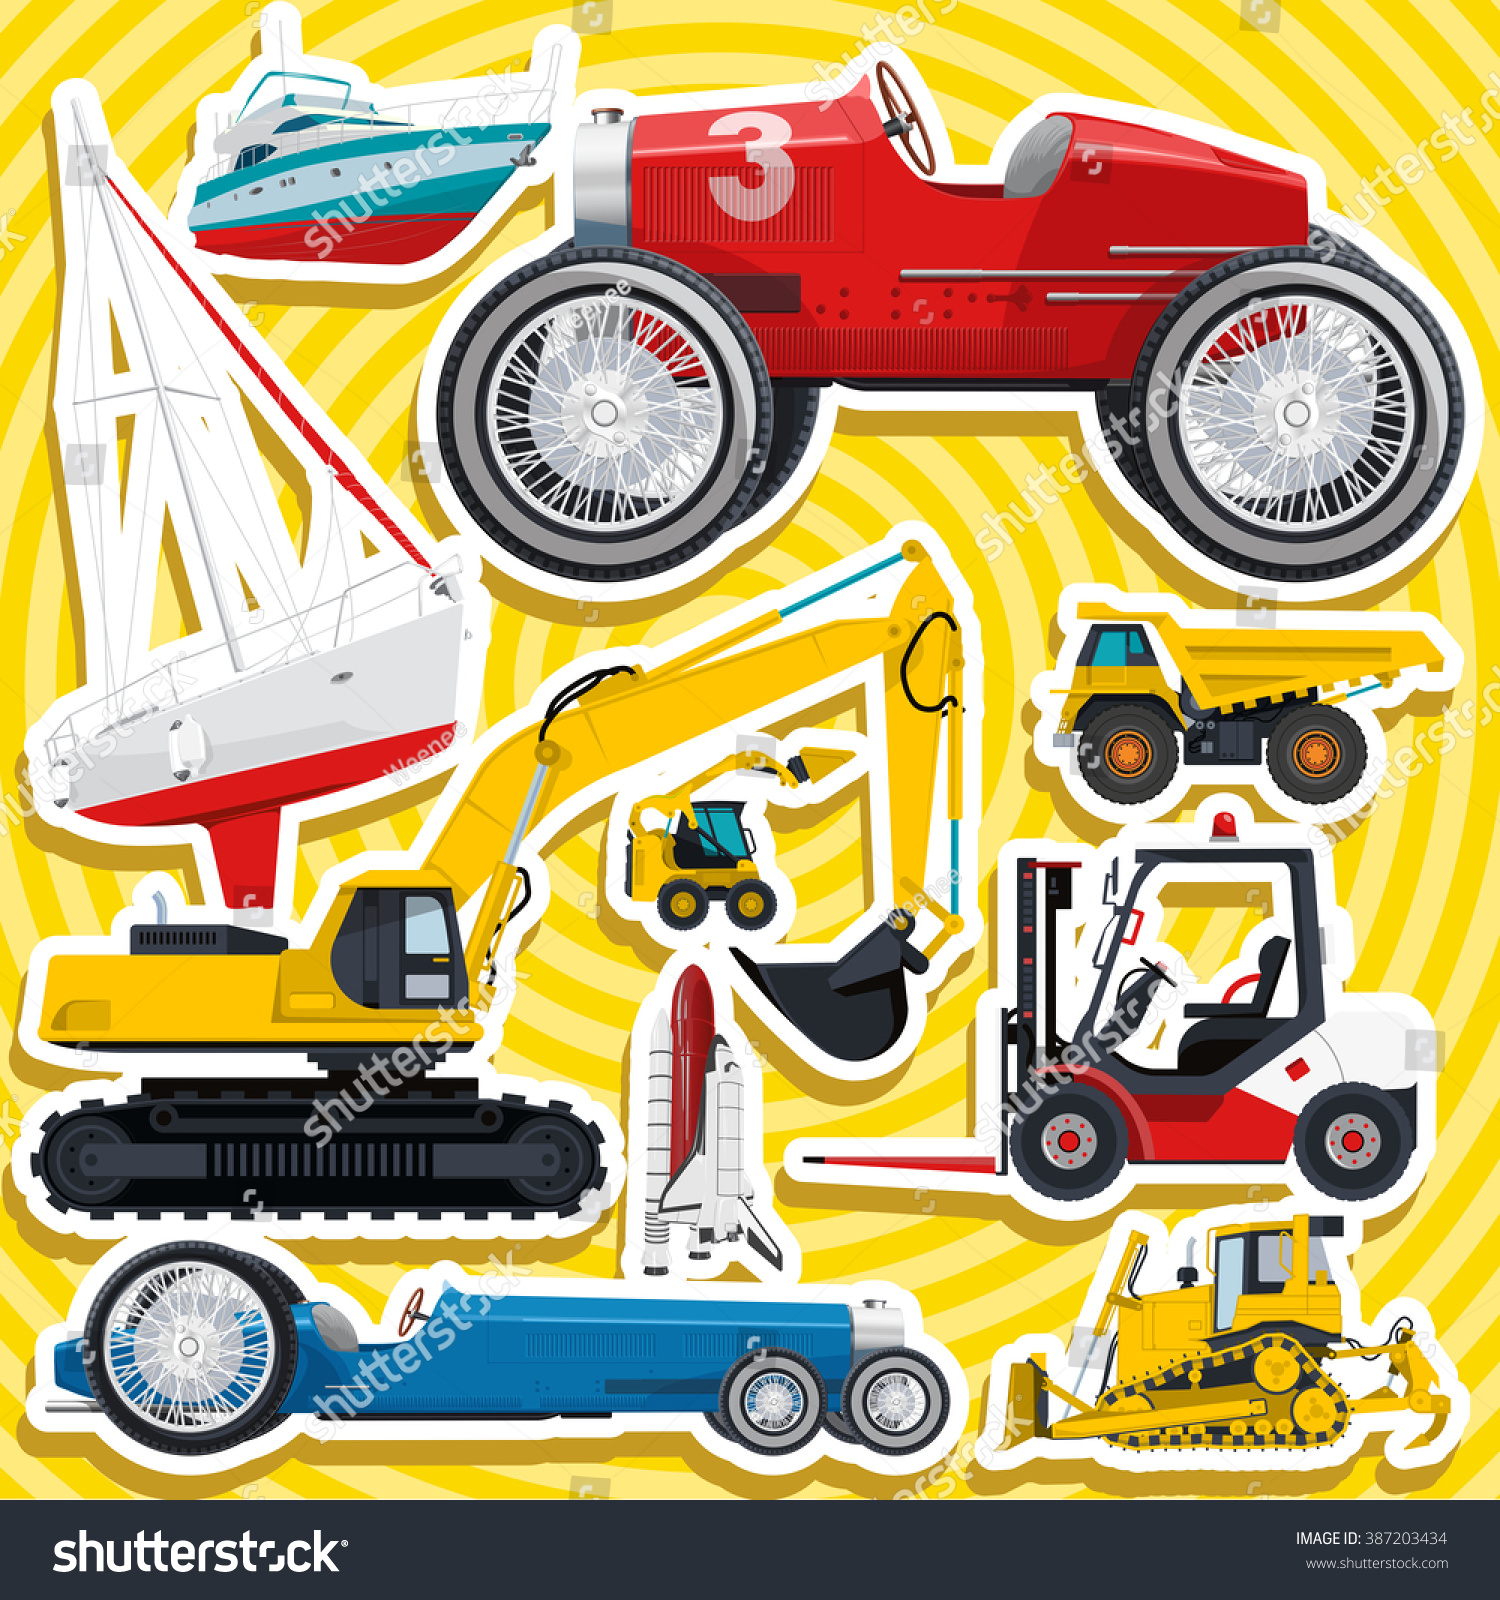 Set Transportation Toys Sticker Kid Scrapbook Stock Vector - Truck decal graphicstruck and vehicle decal graphic design stock vector image